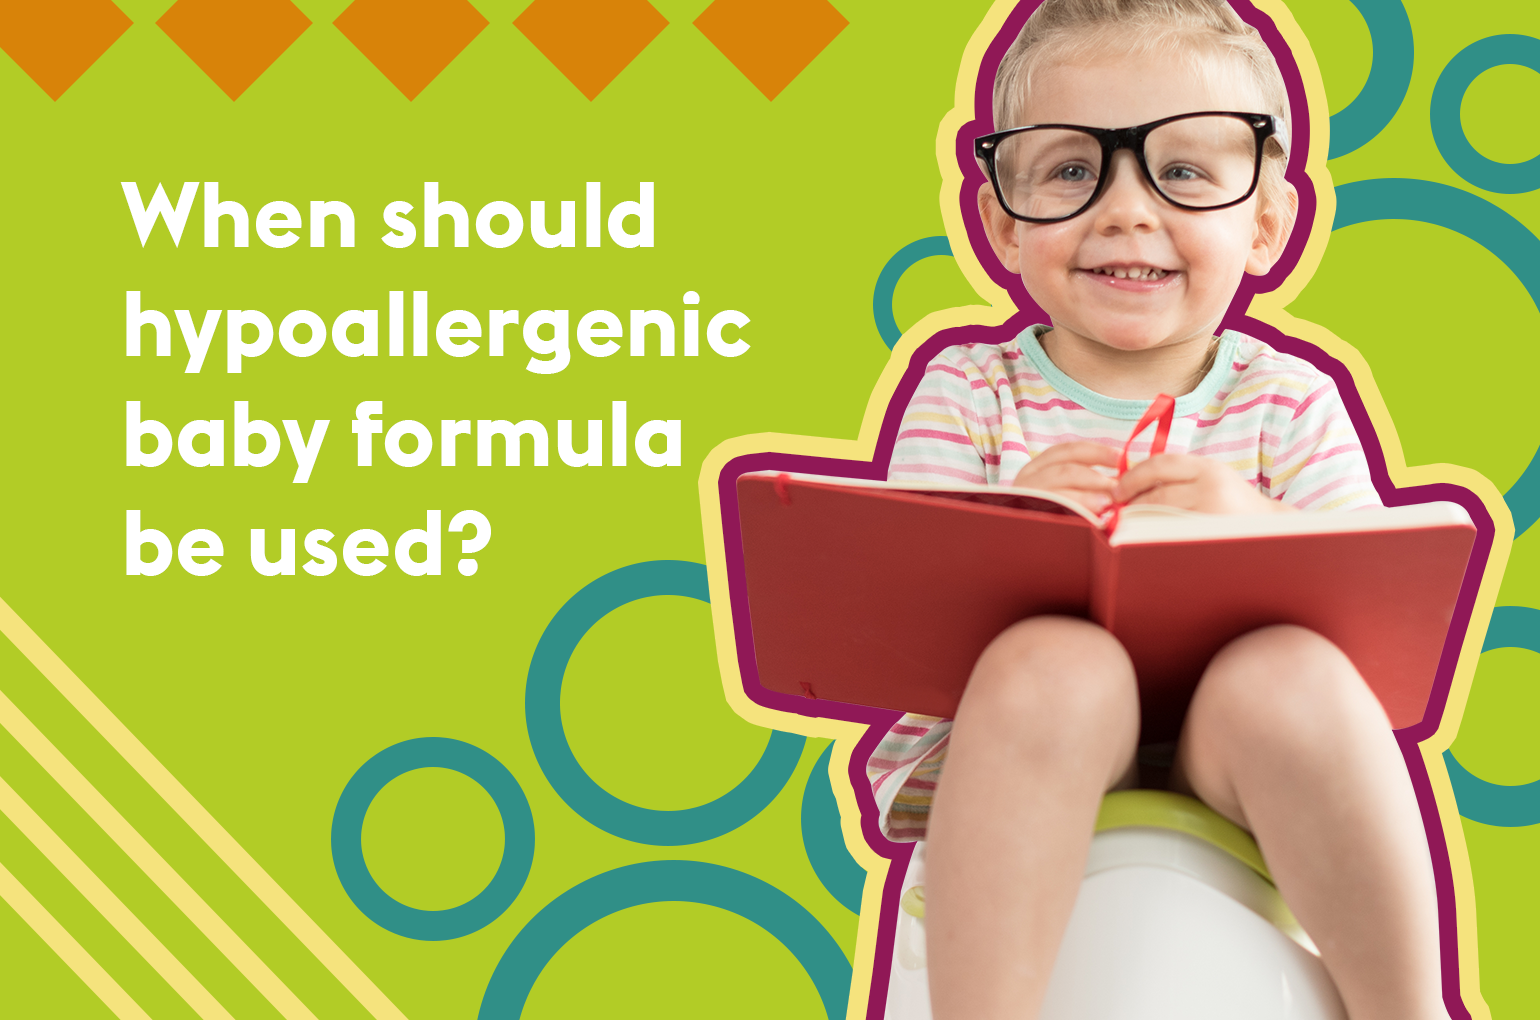 When should hypoallergenic baby formula be used?